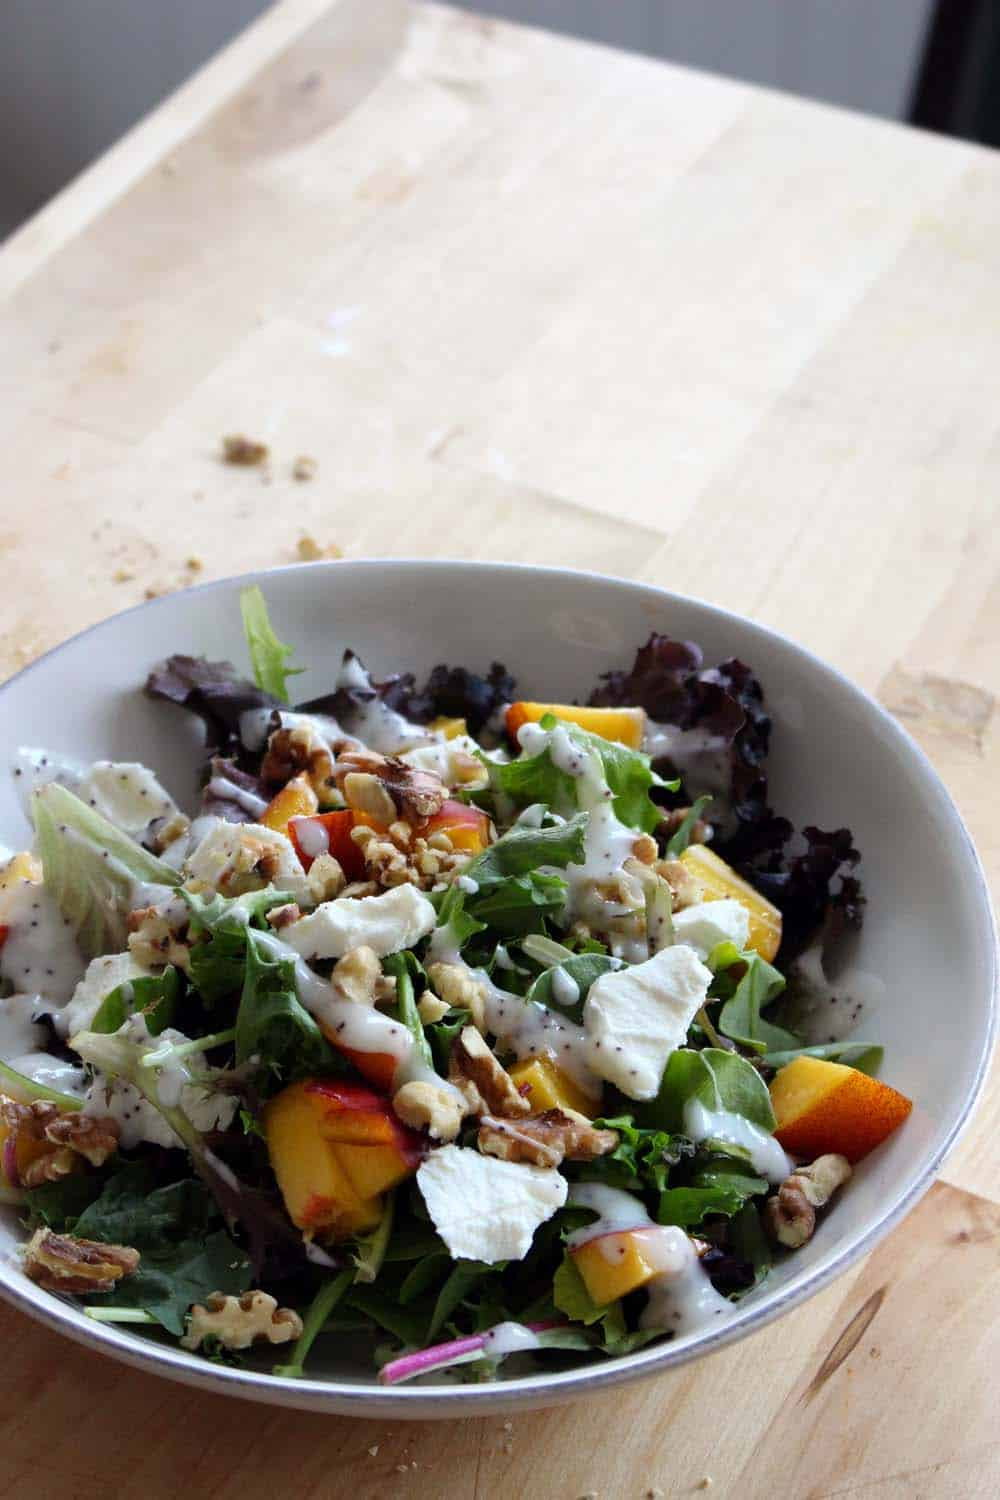 Mixed greens salad with peaches, goat cheese, and walnuts in a white bowl and set on a on a wooden cutting board.